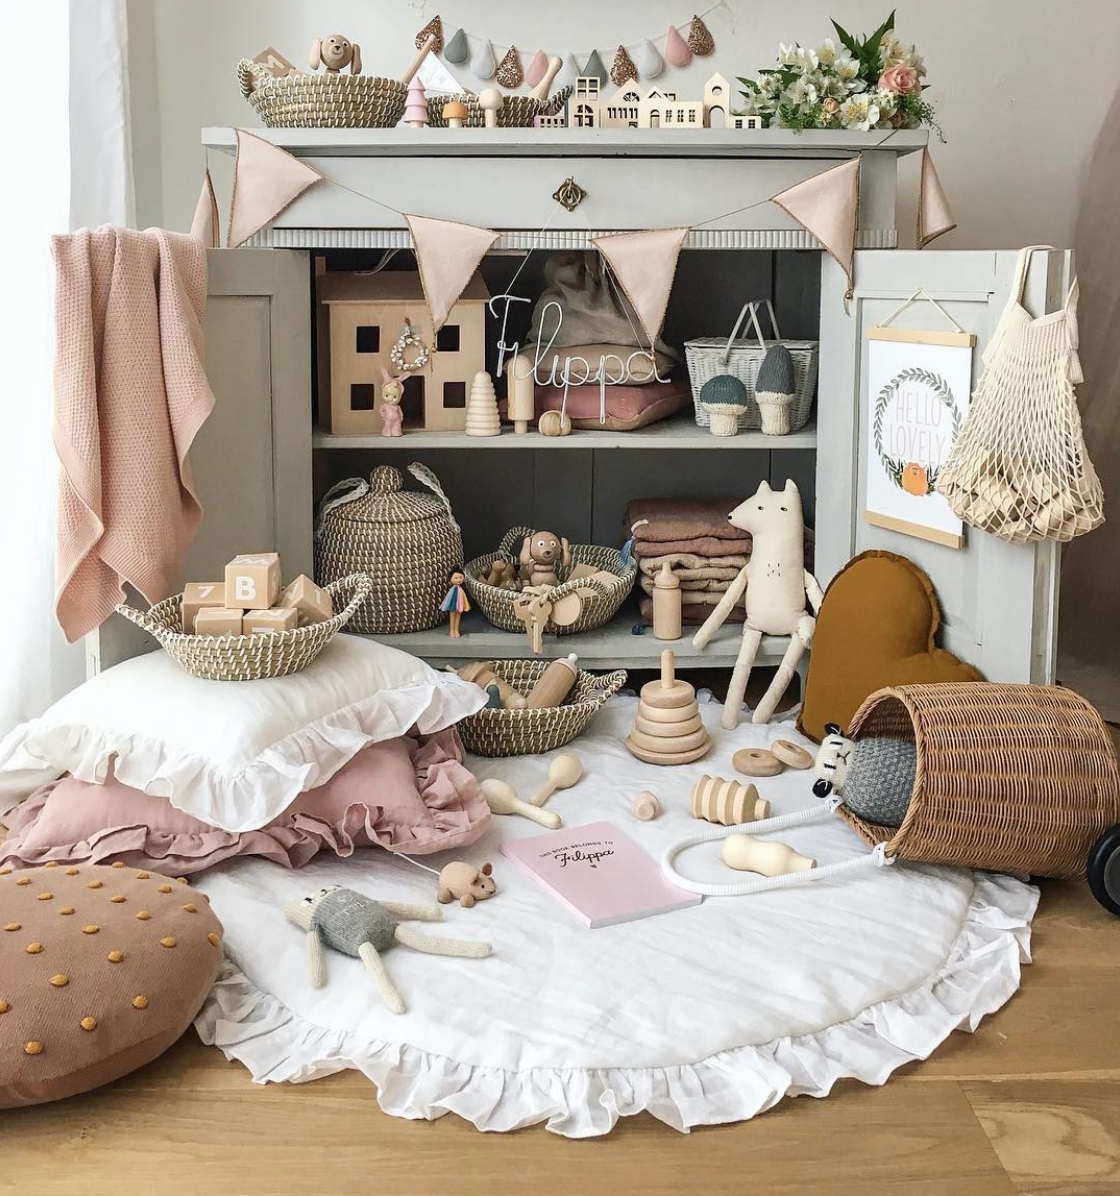 How Beautiful Is This Nursery And Playroom By @misstiptop Featuring